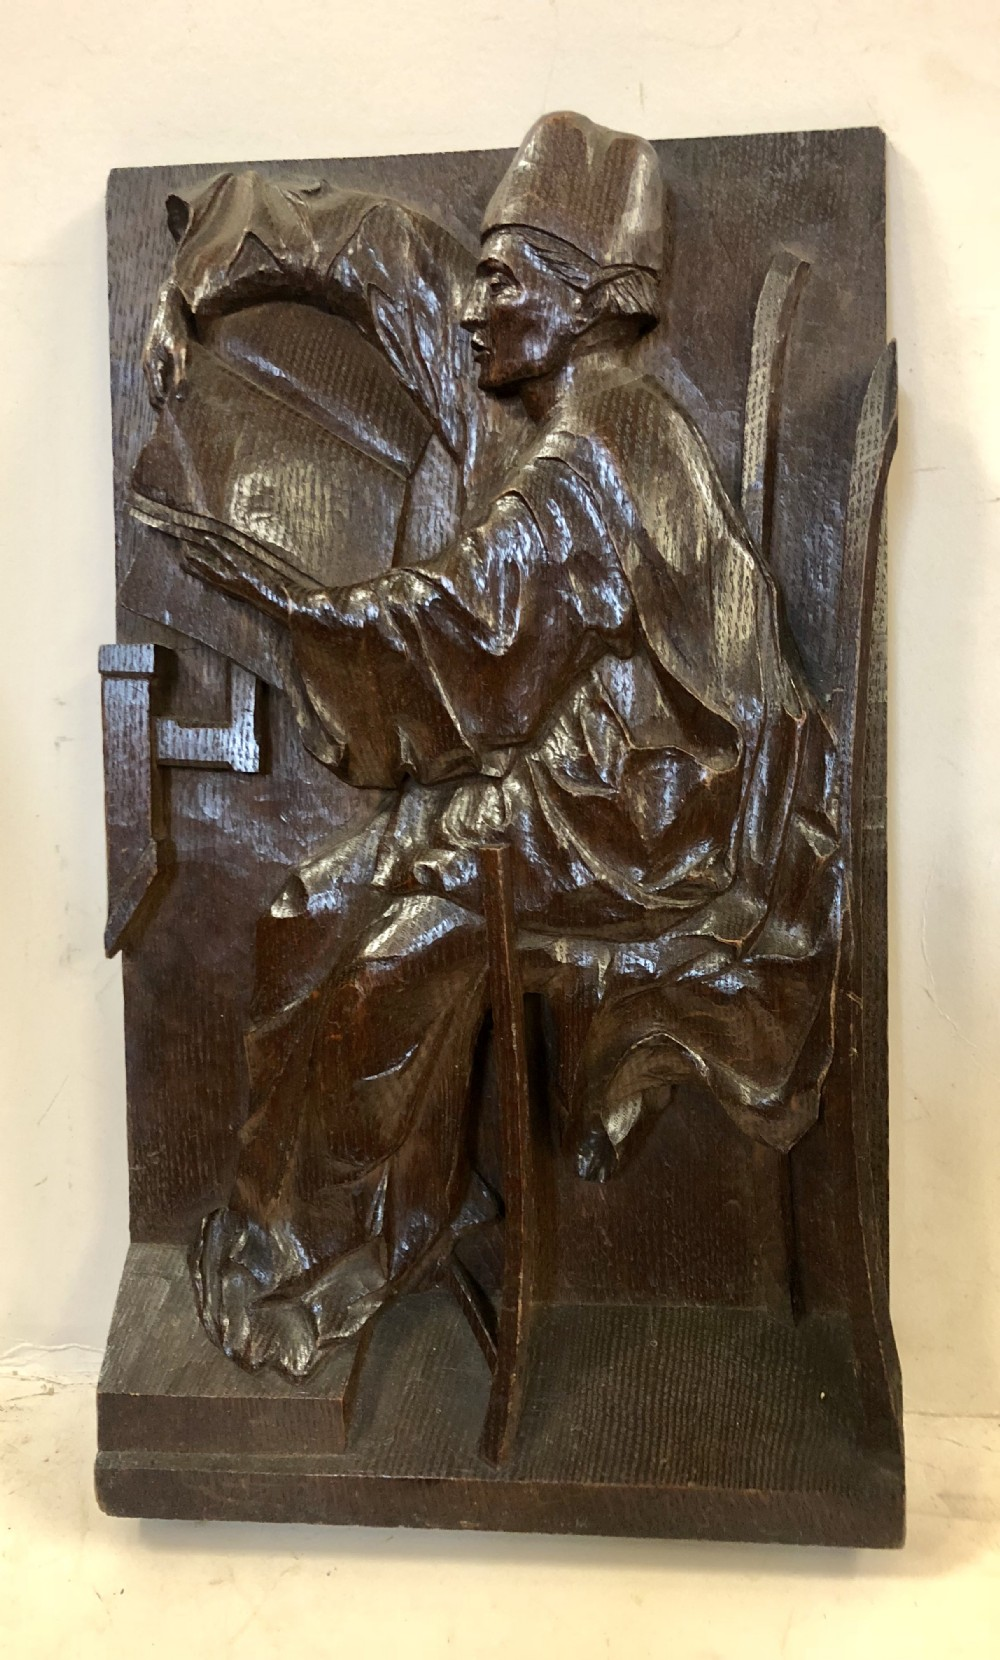 c18th relief carving in oak of a scholar